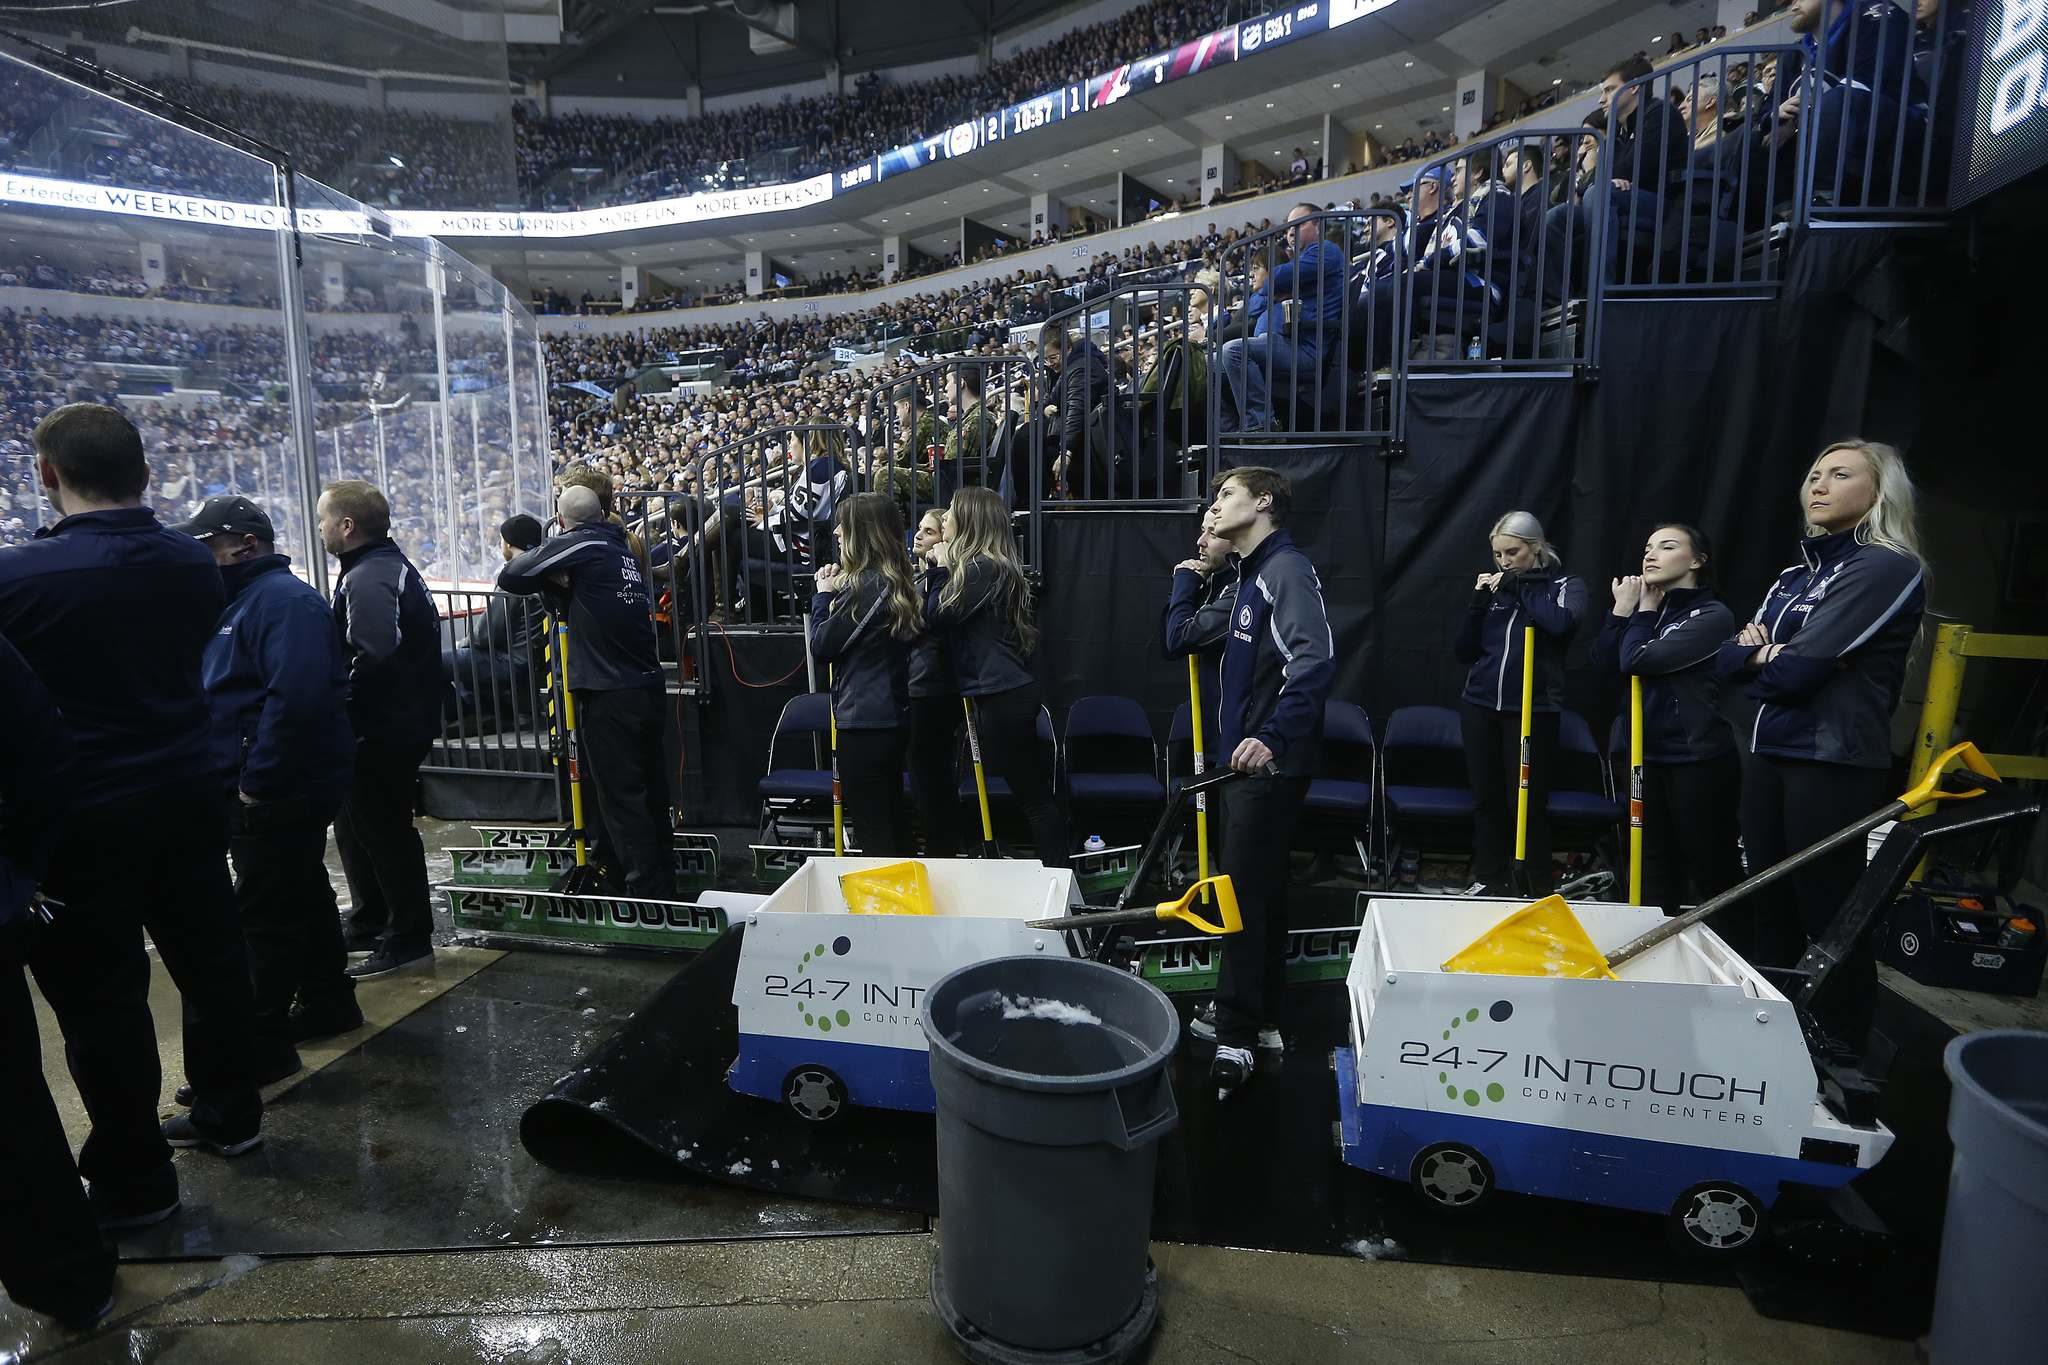 Member of the Ice Crew wait to step onto the ice during the first period of the NHL game between the Winnipeg Jets and the Arizona Coyotes.